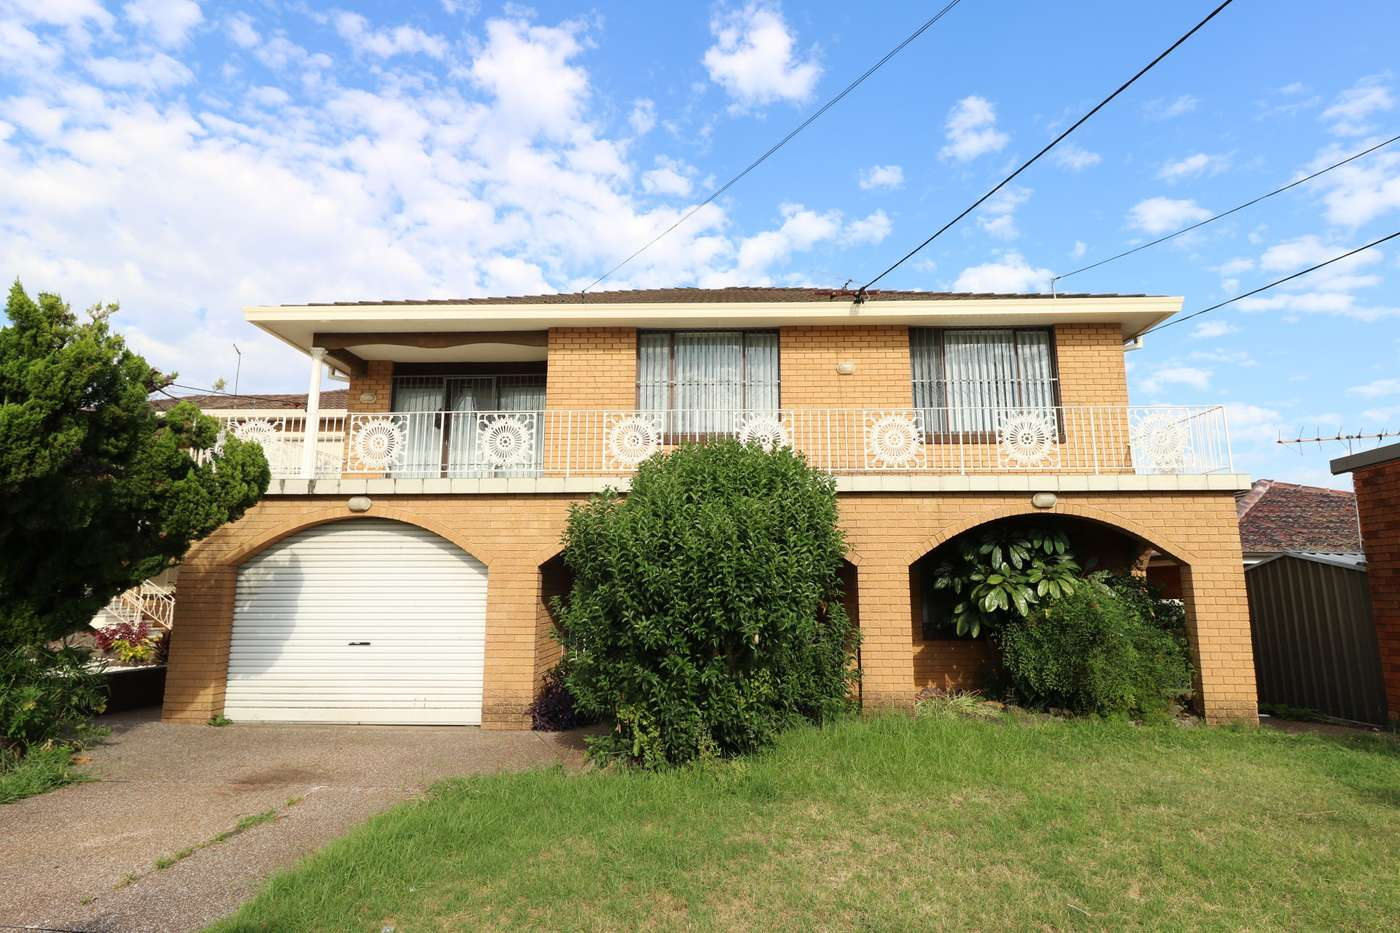 Main view of Homely house listing, 1 Mallow Place, Cabramatta West, NSW 2166